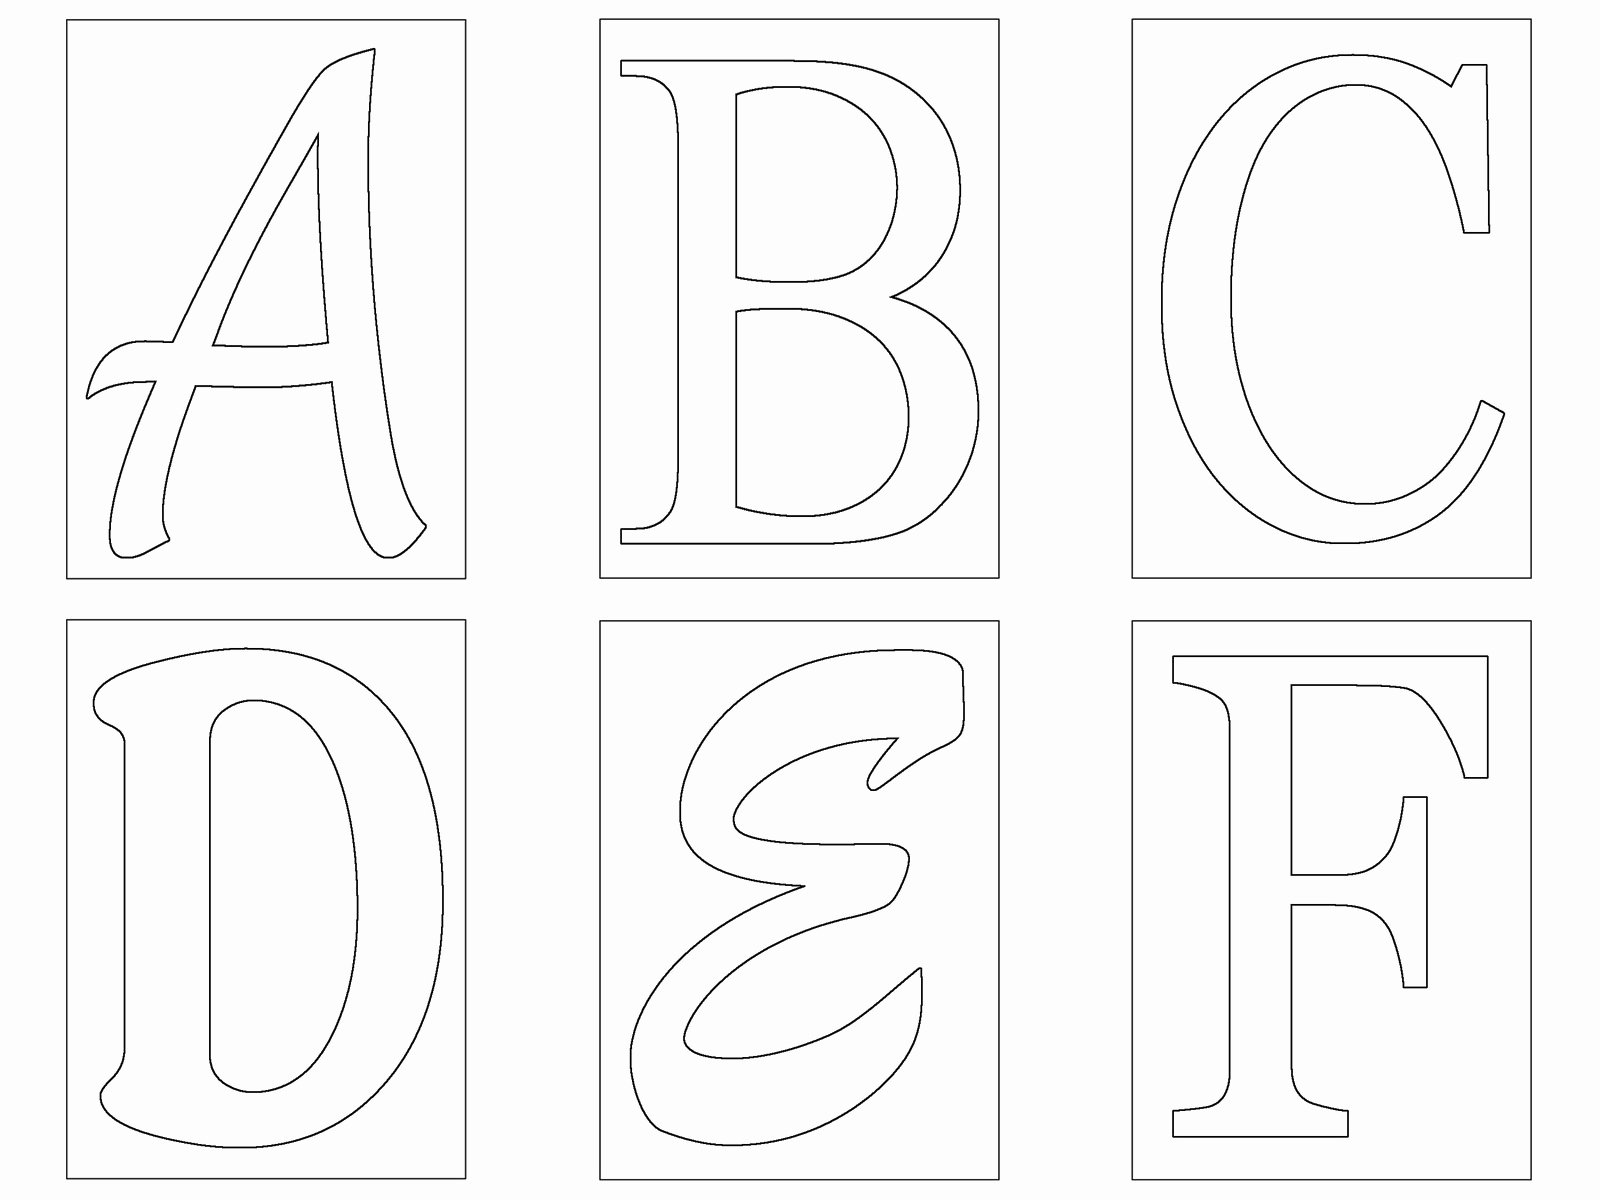 Free Printable Alphabet Stencils Templates Lovely Free Letter Templates